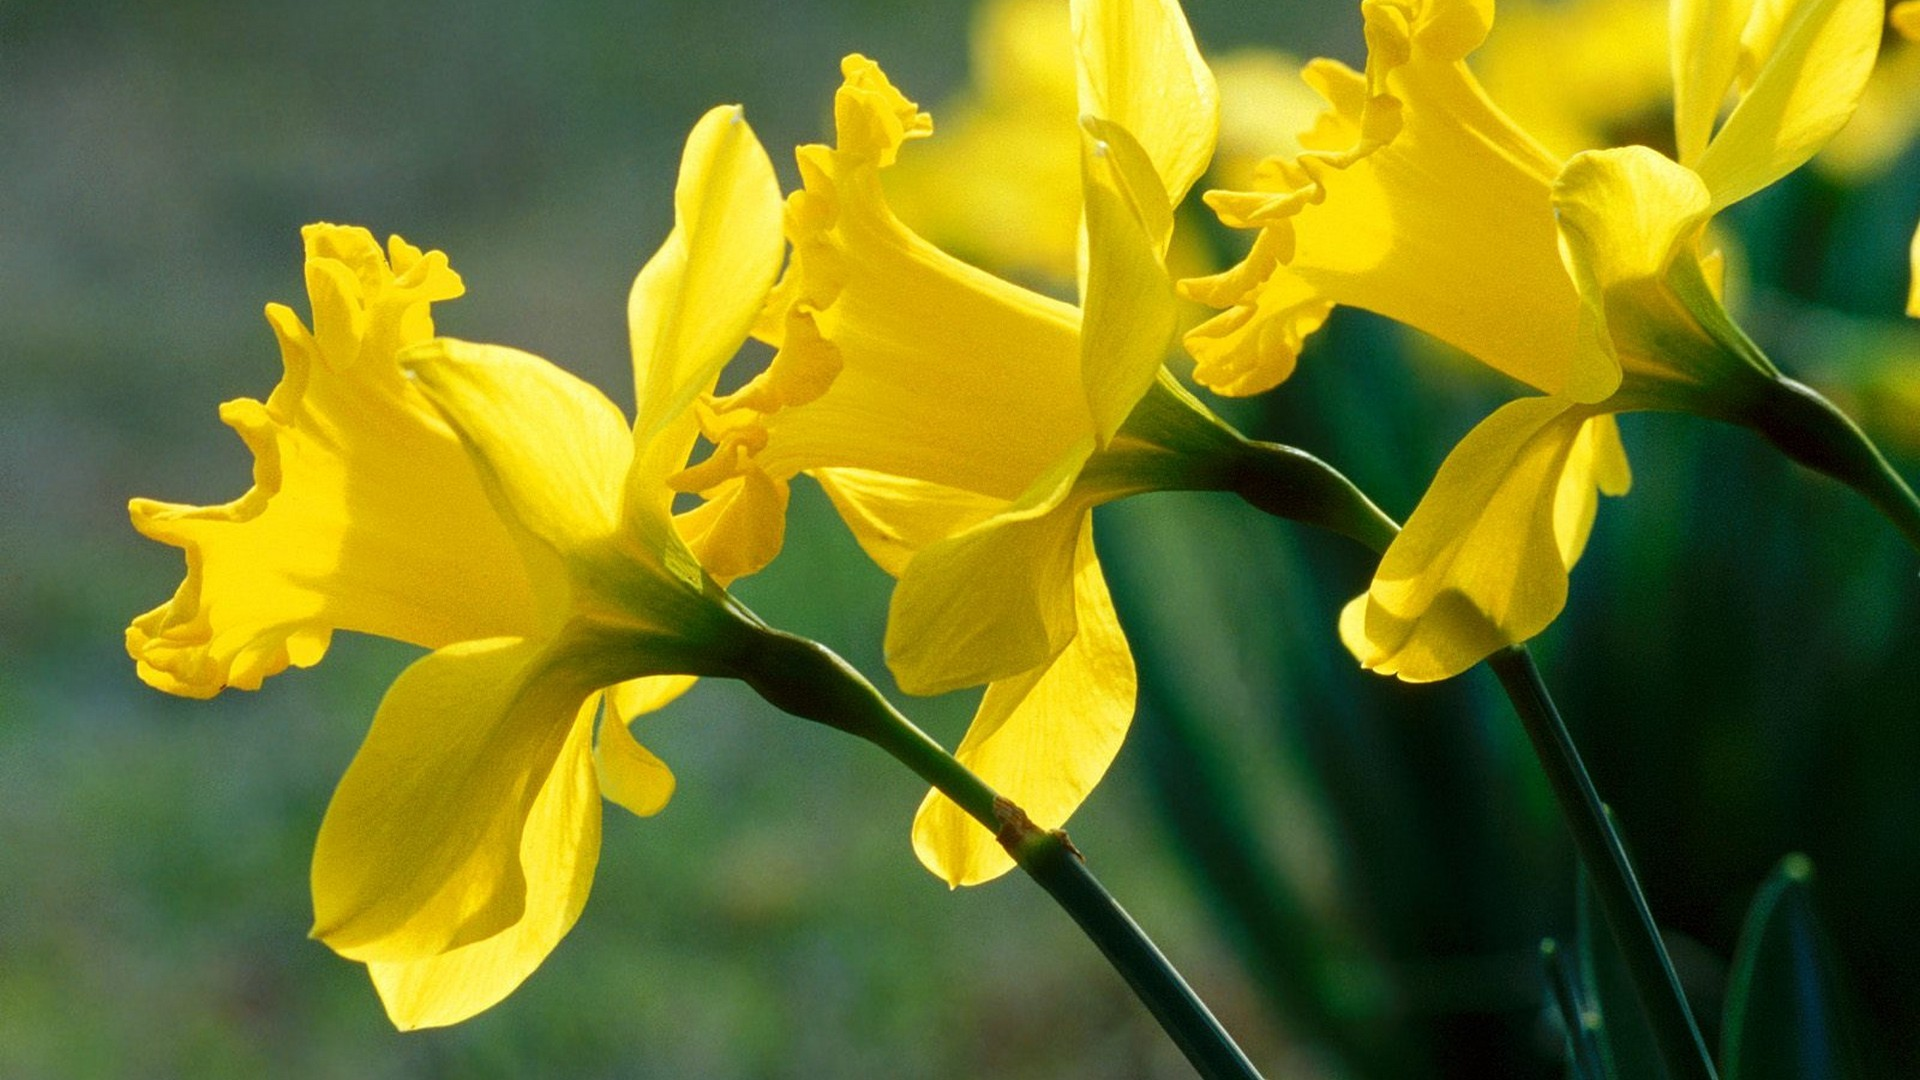 daffodils pictures 20836